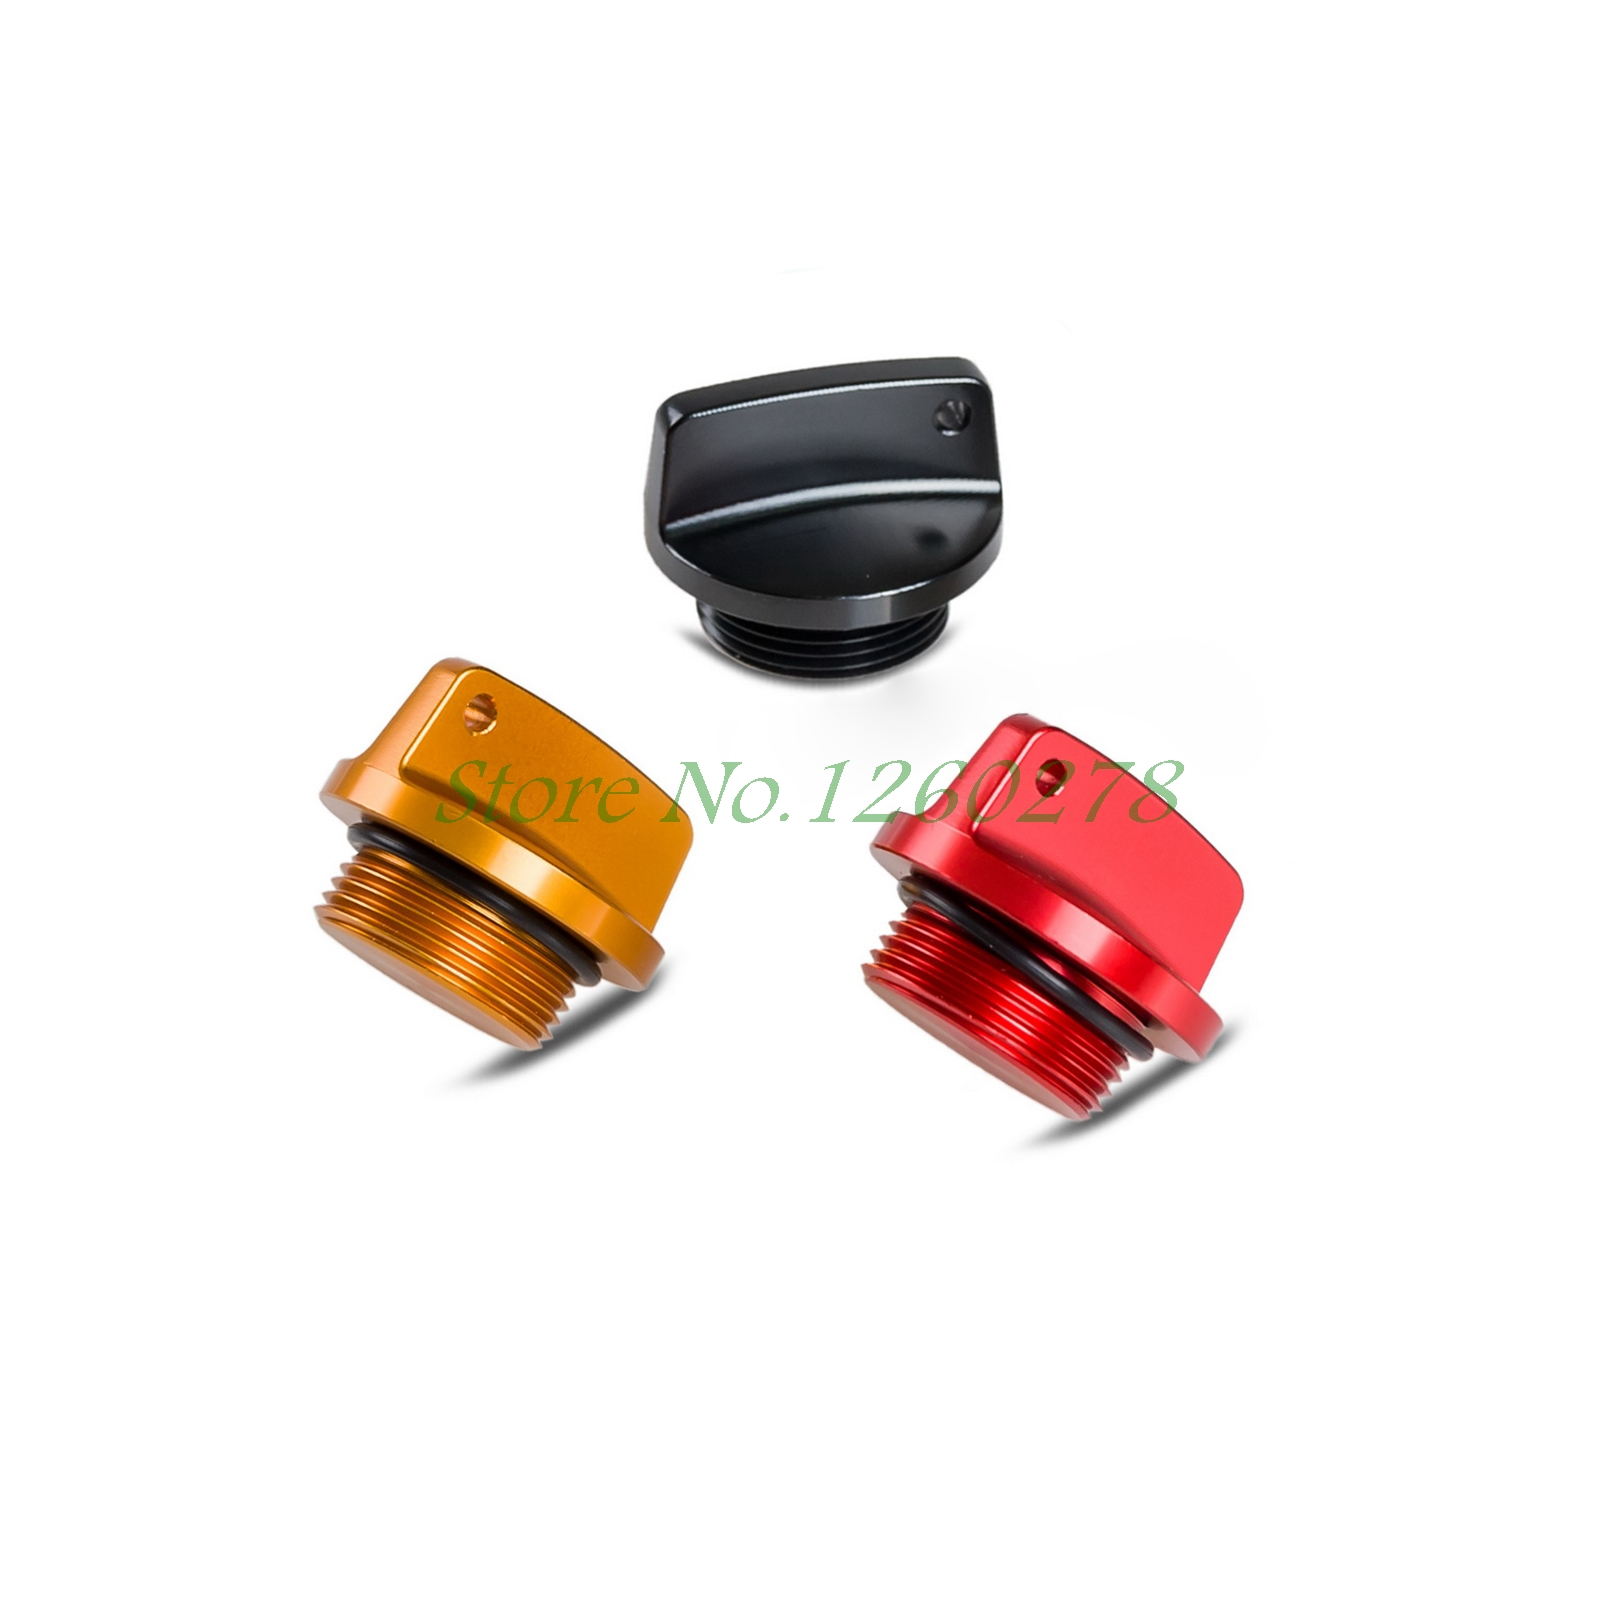 CNC Motorbike Engine Oil Filler Plug fits For KTM 125 200 250 300 350 400 450 505 SX SX-F EXC EXC-F 1998-2016 aluminum water cool flange fits 26 29cc qj zenoah rcmk cy gas engine for rc boat